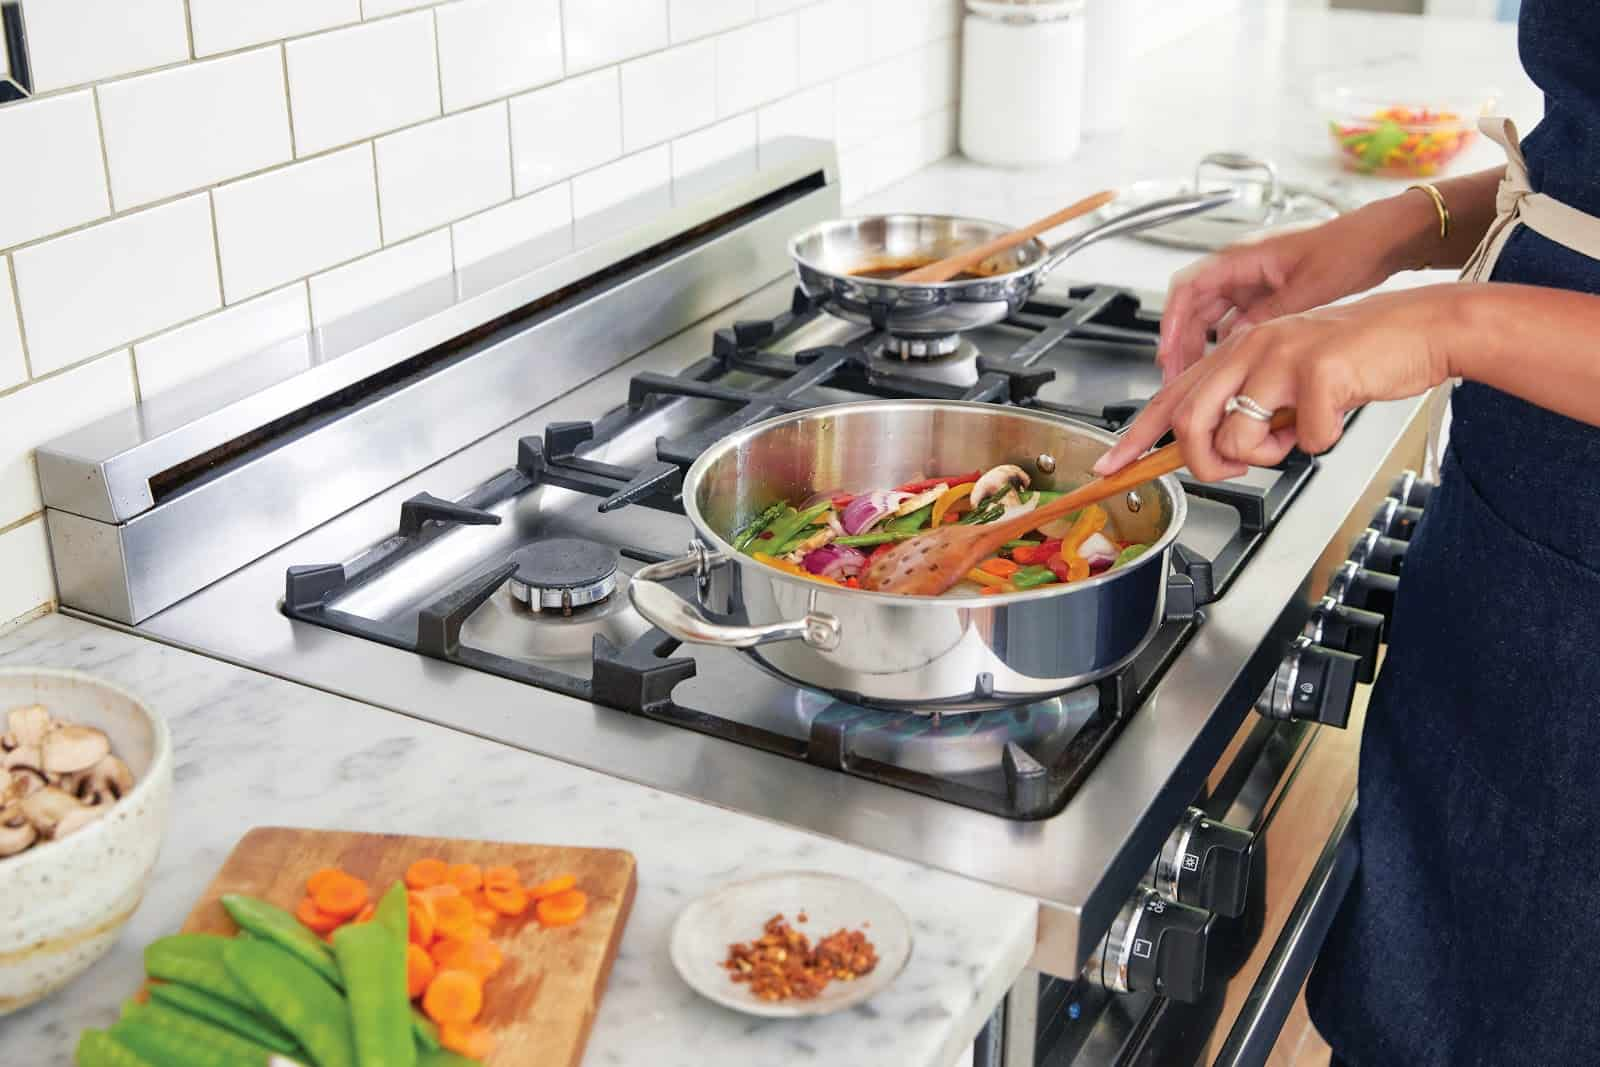 Fresh vegetables sauteed on stove in home-based restaurant